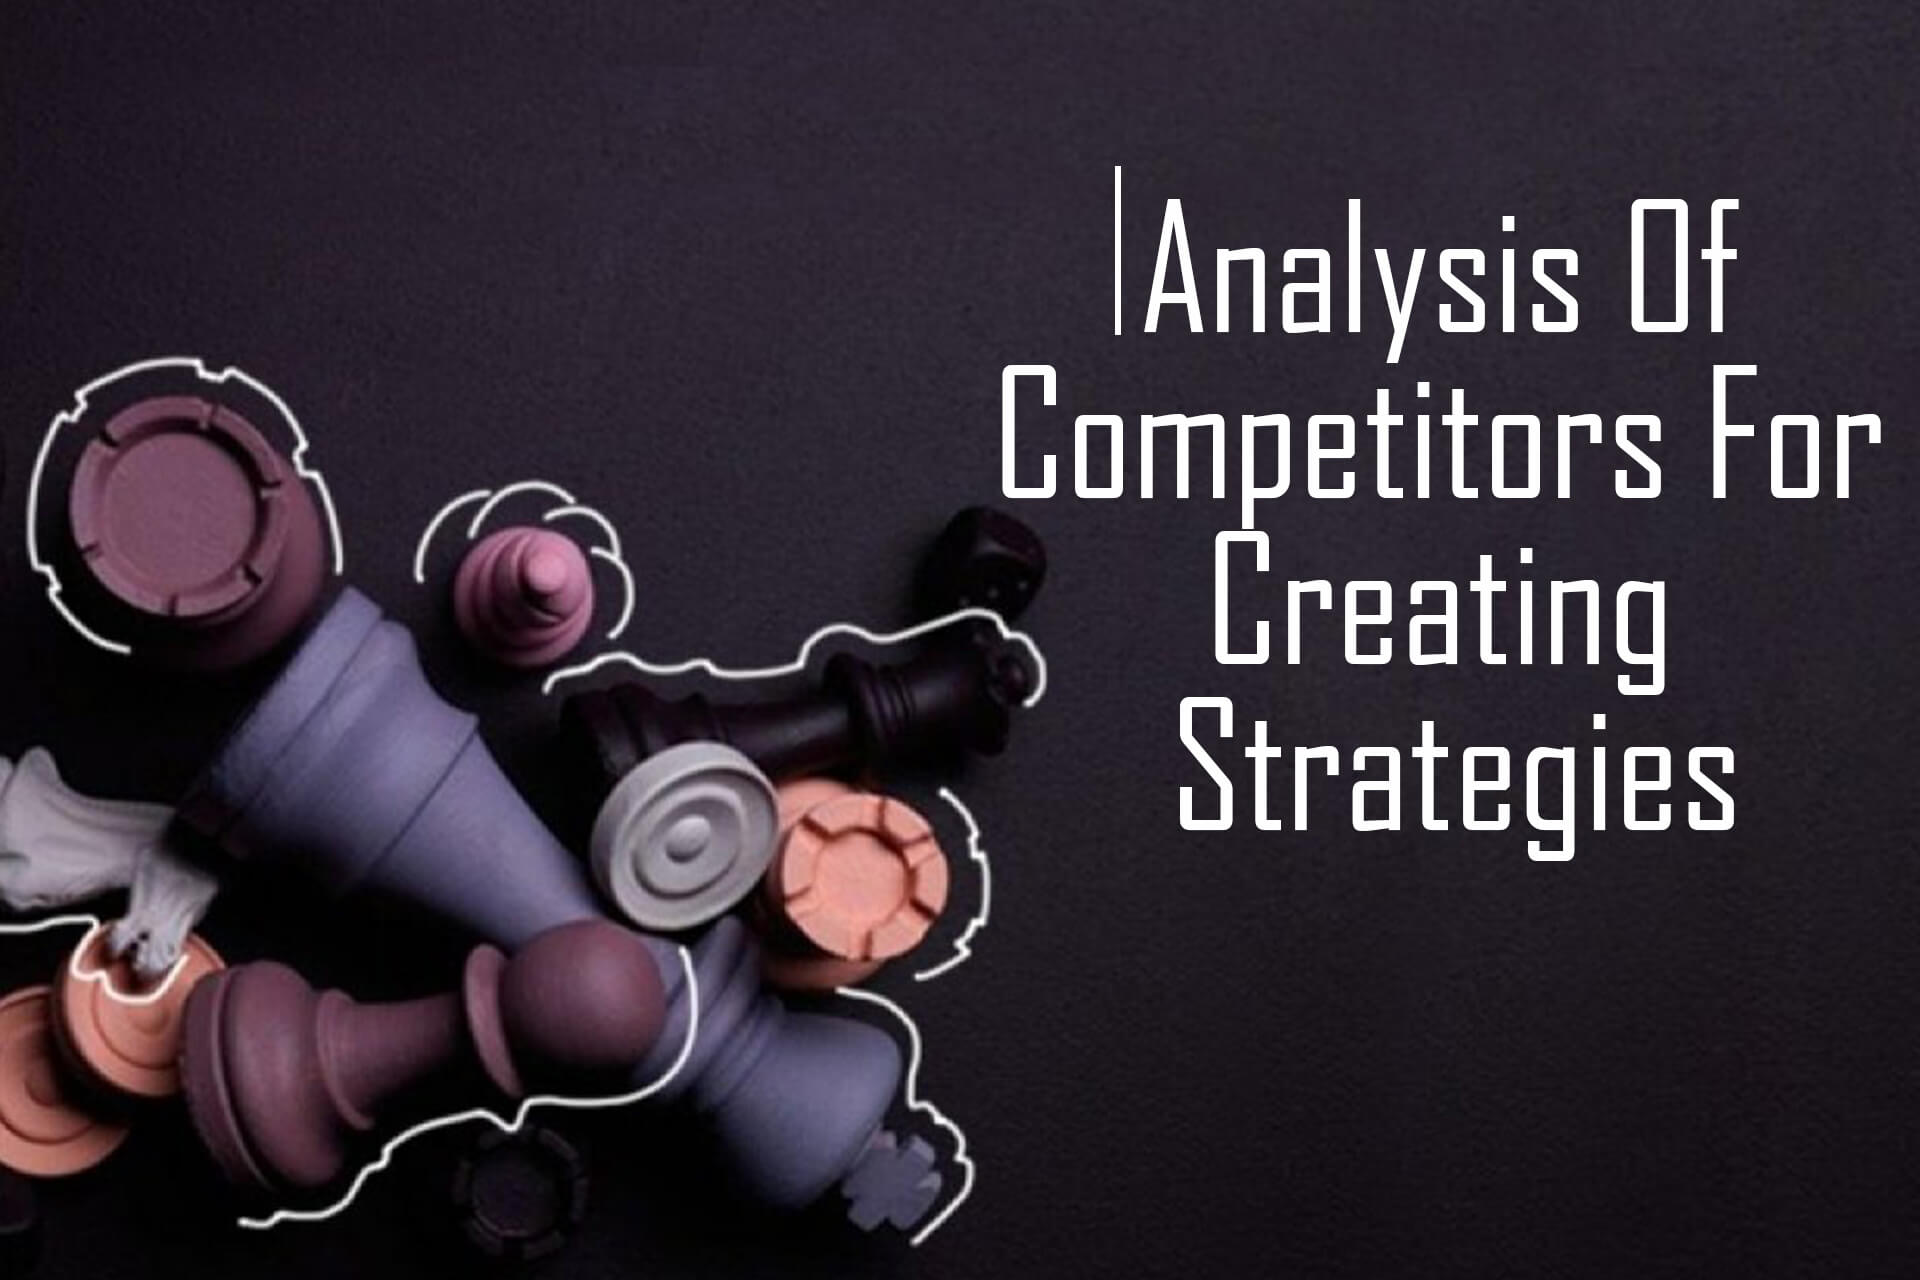 Analysis of competitors for creating strategies